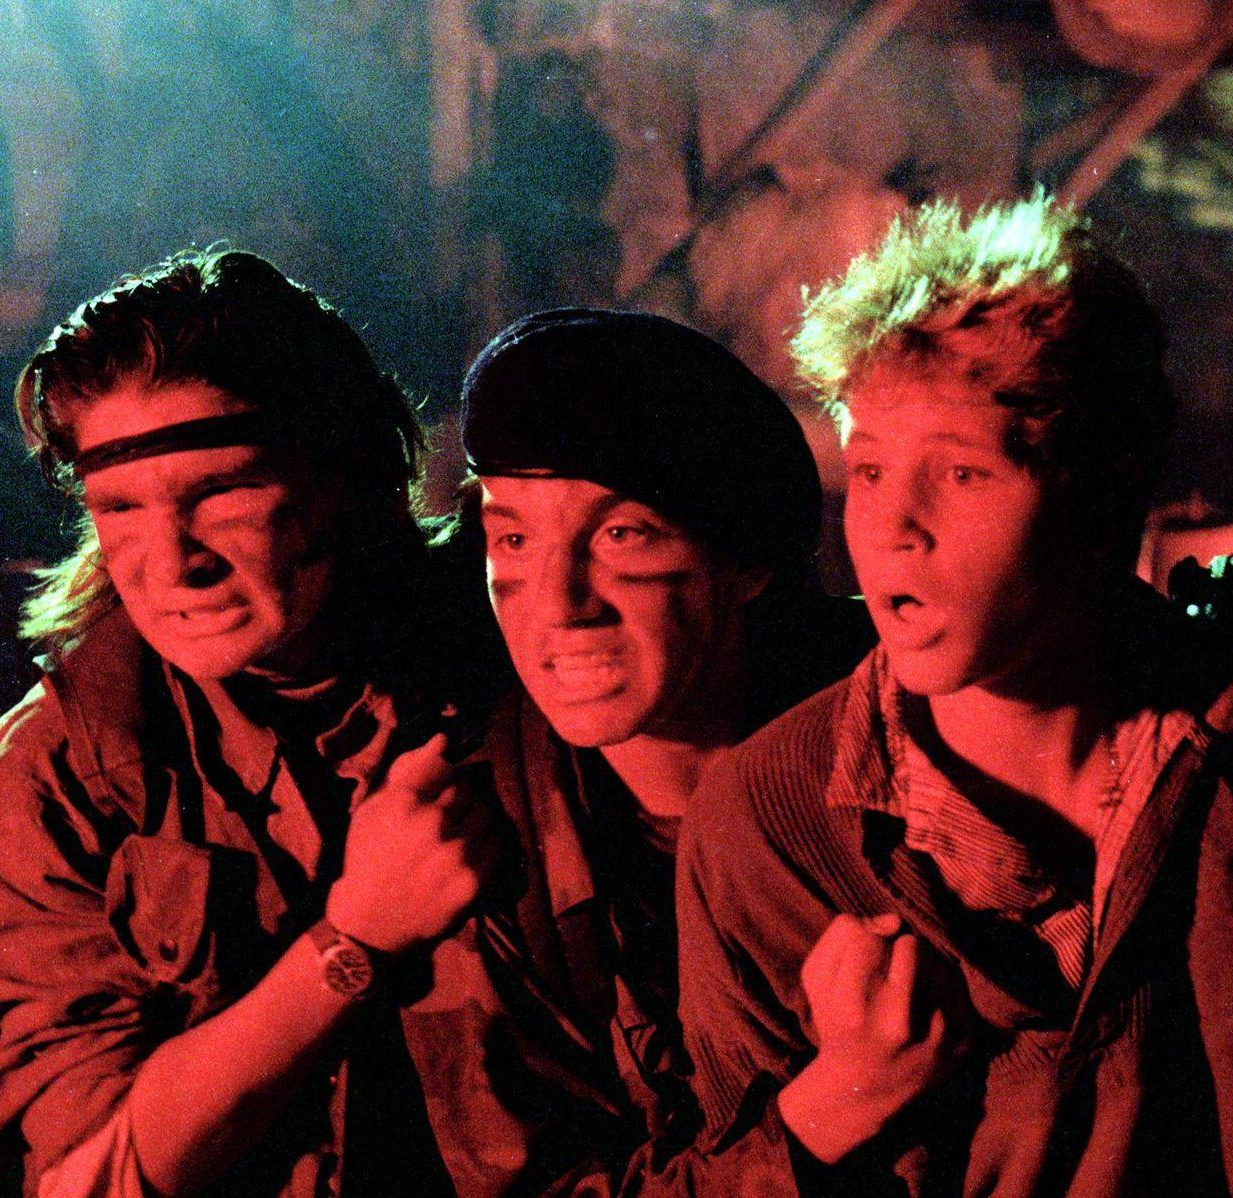 lost boys still e1598278019309 20 Horror Movies That Defined The 1980s